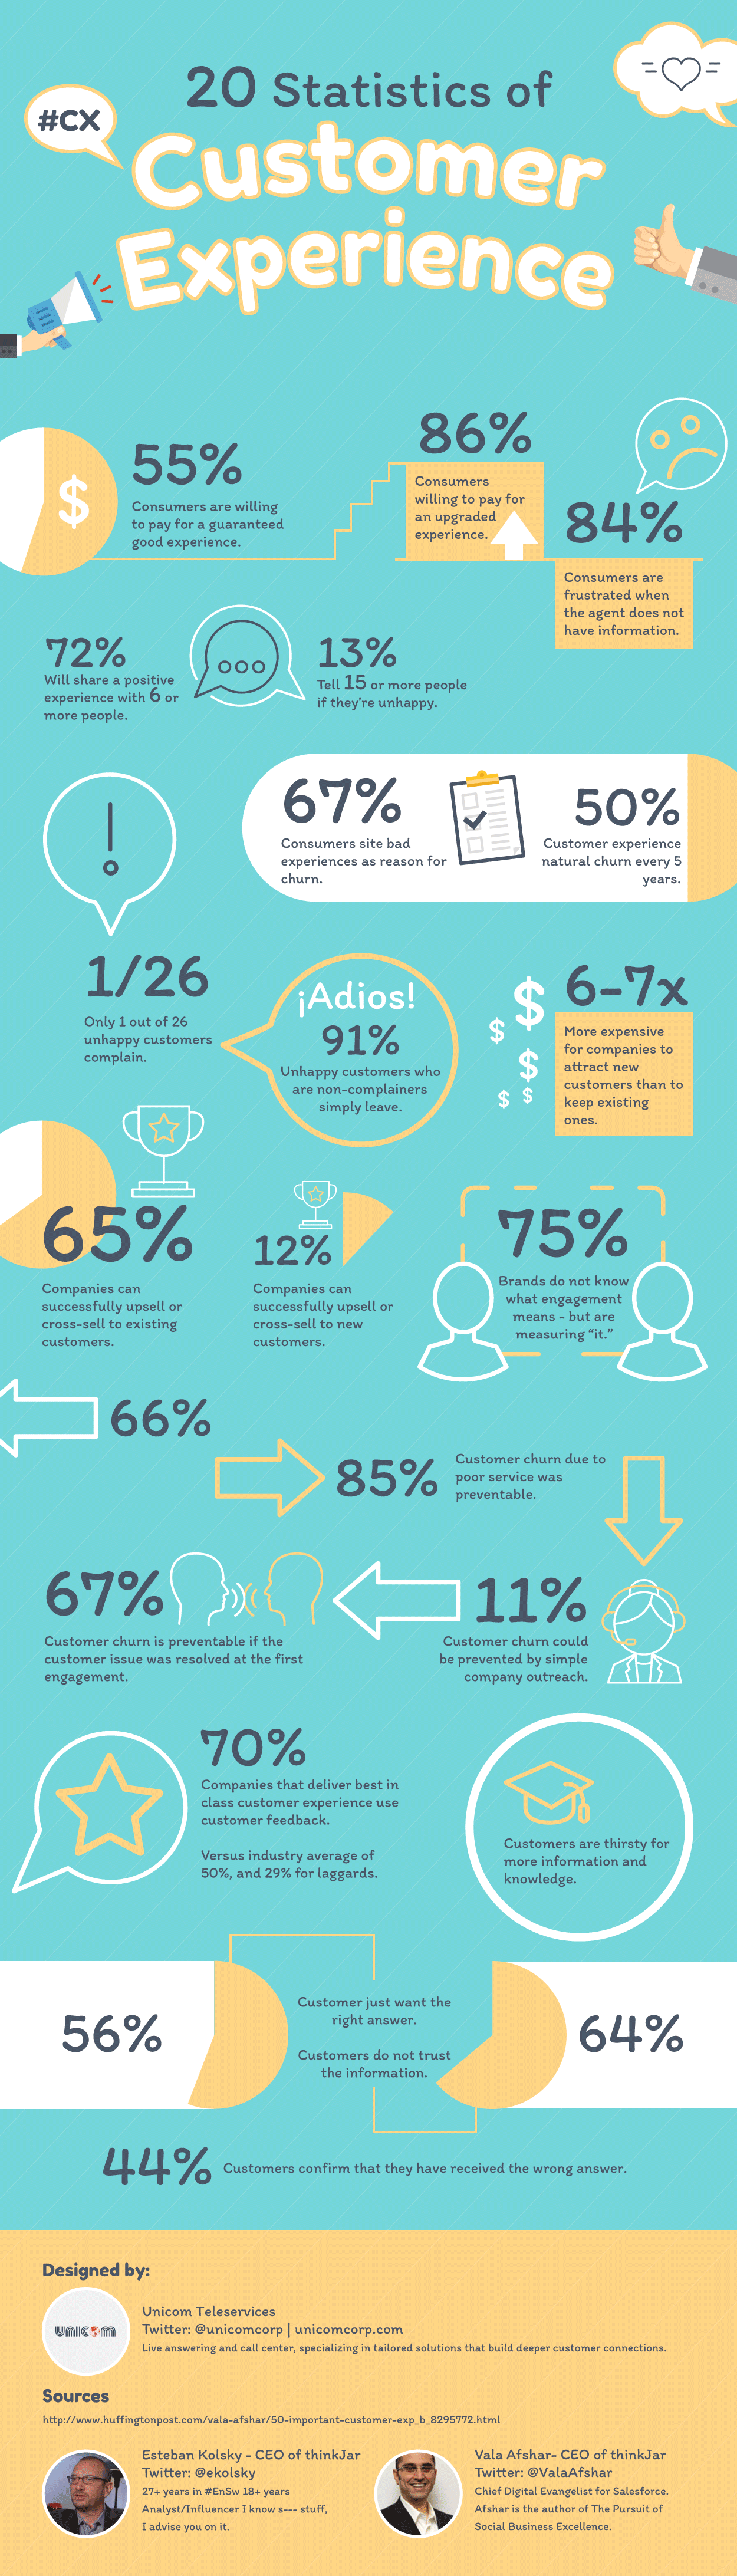 20 Statistics of Customer Experience